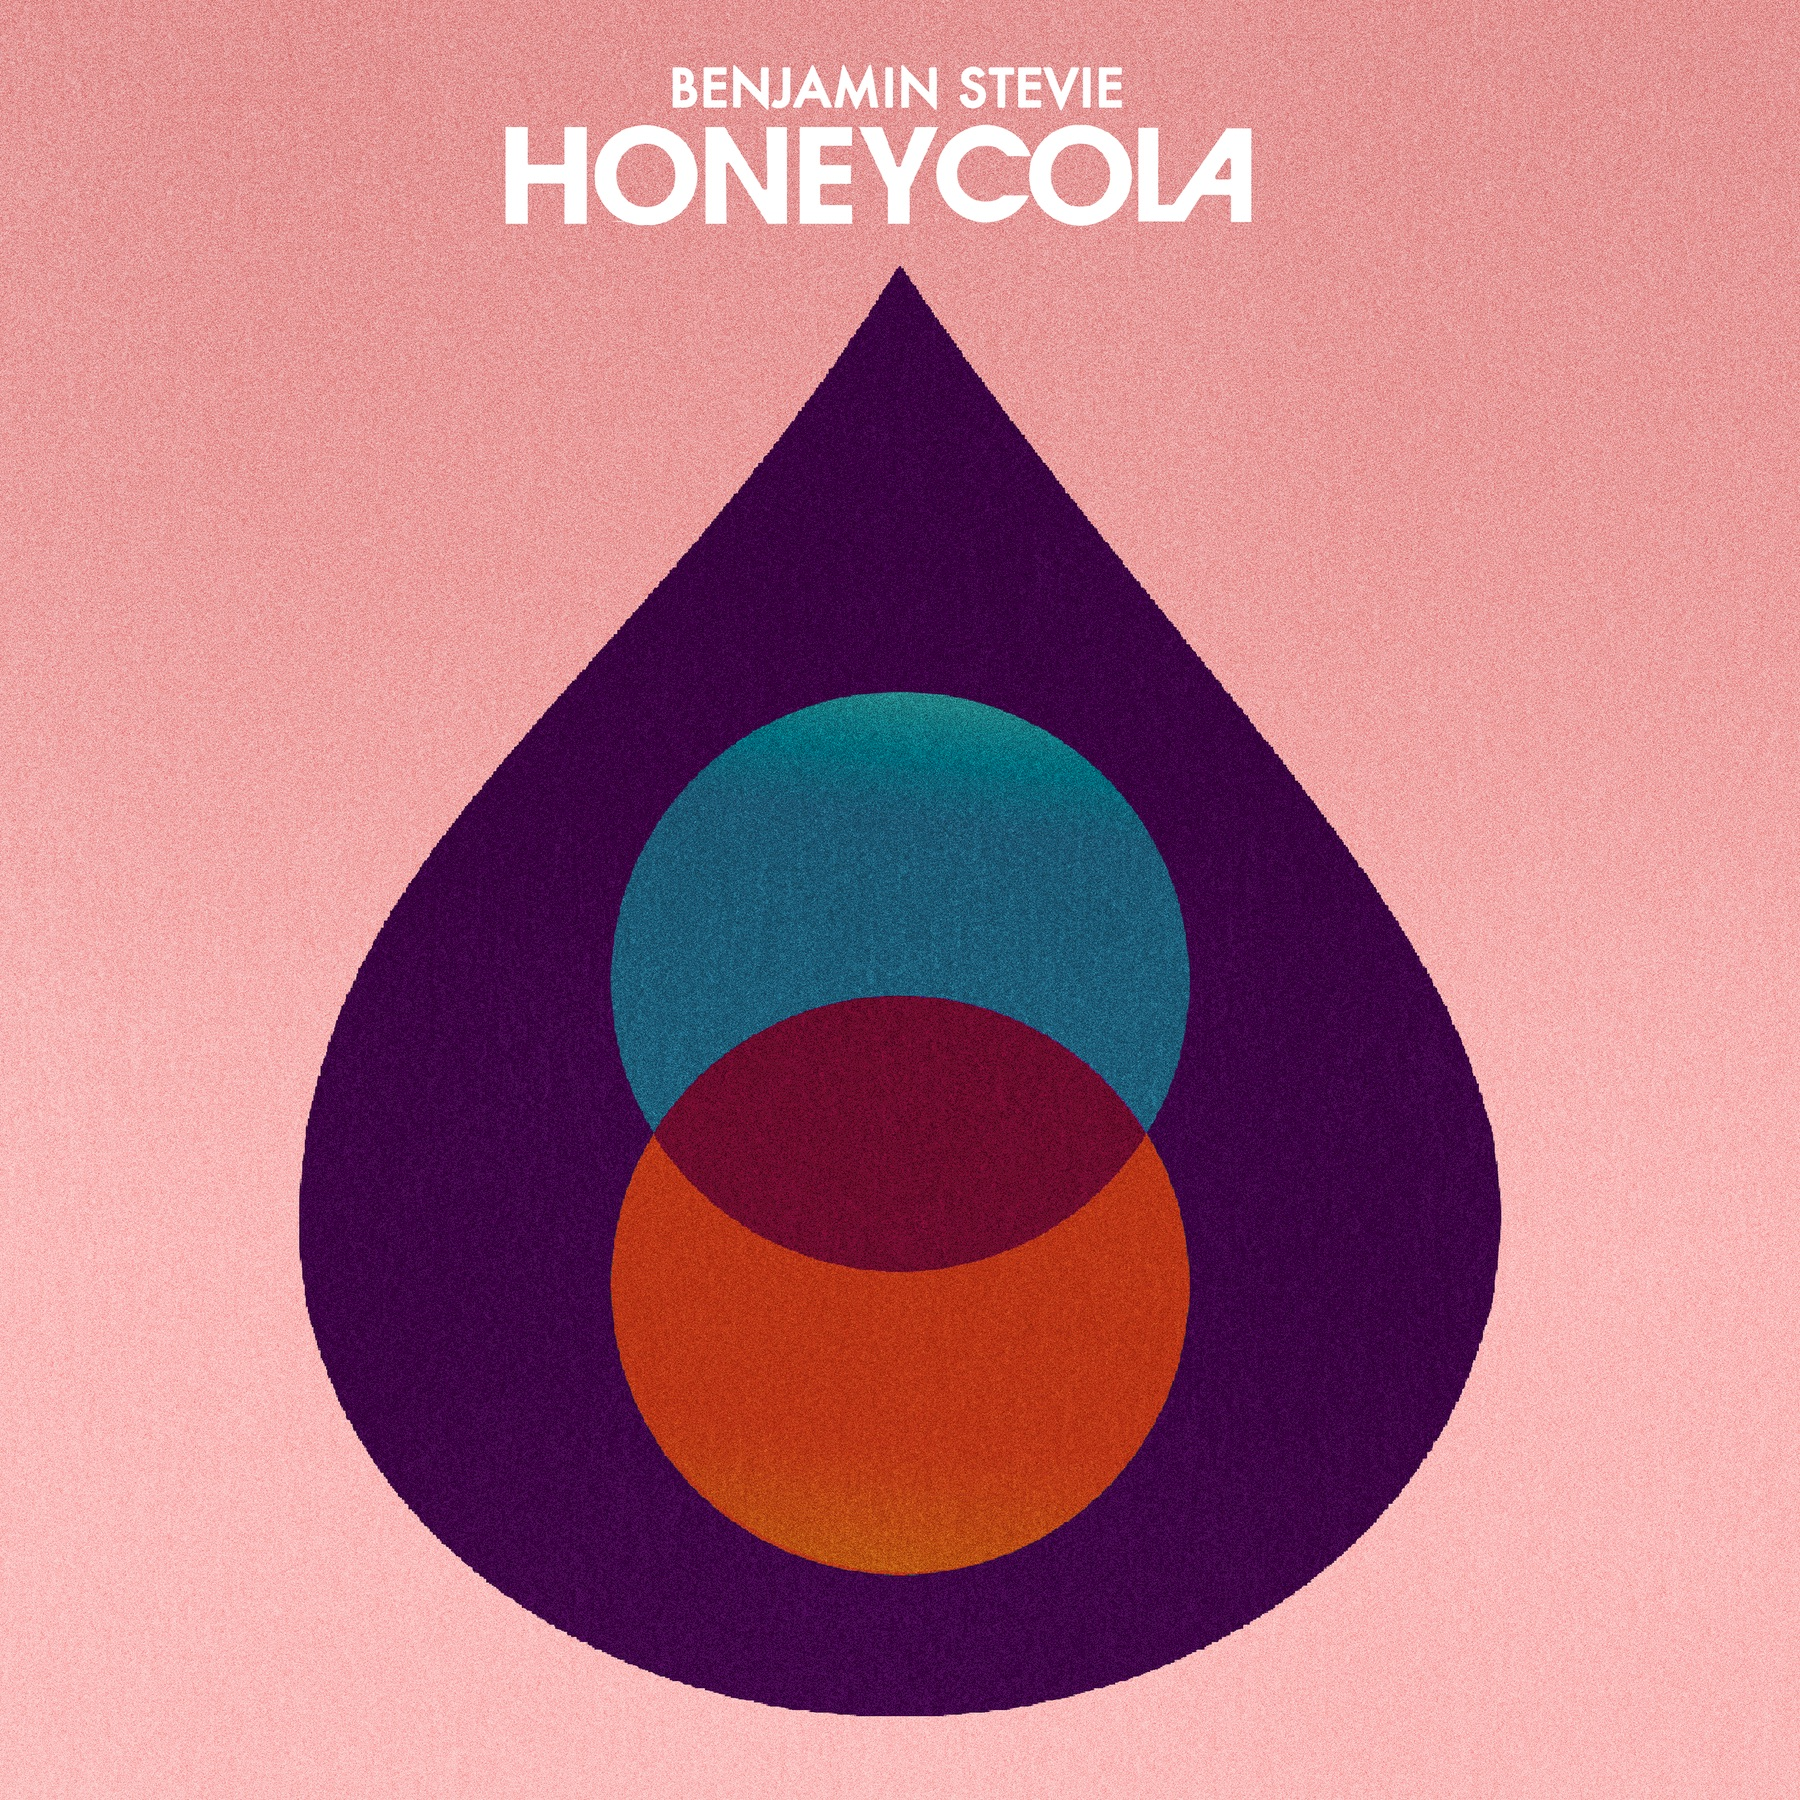 Honeycola - Single